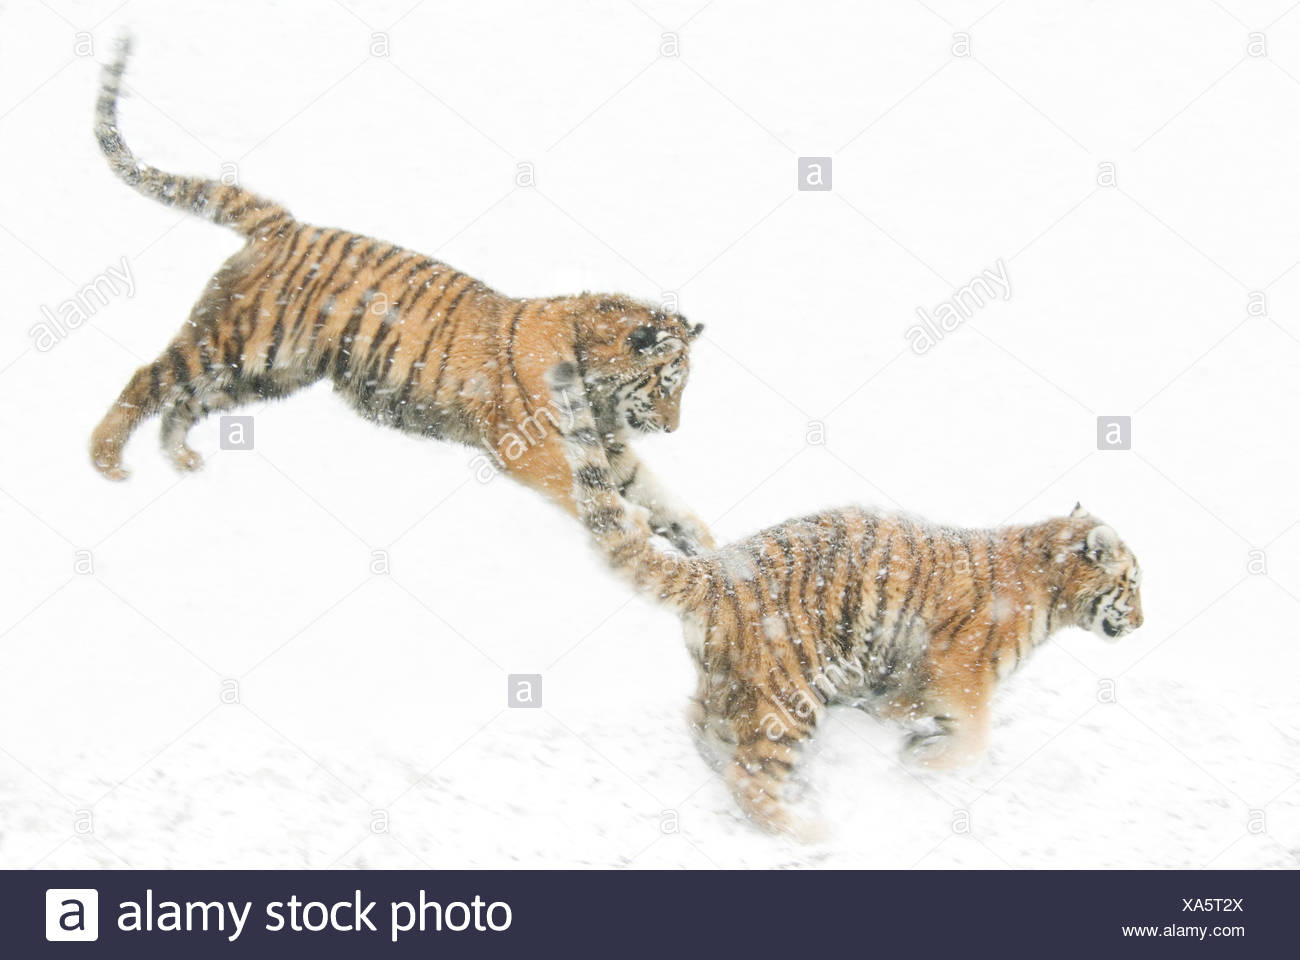 Two Siberian tigers {Panthera tigris altaica} leaping in snow, captive - Stock Image